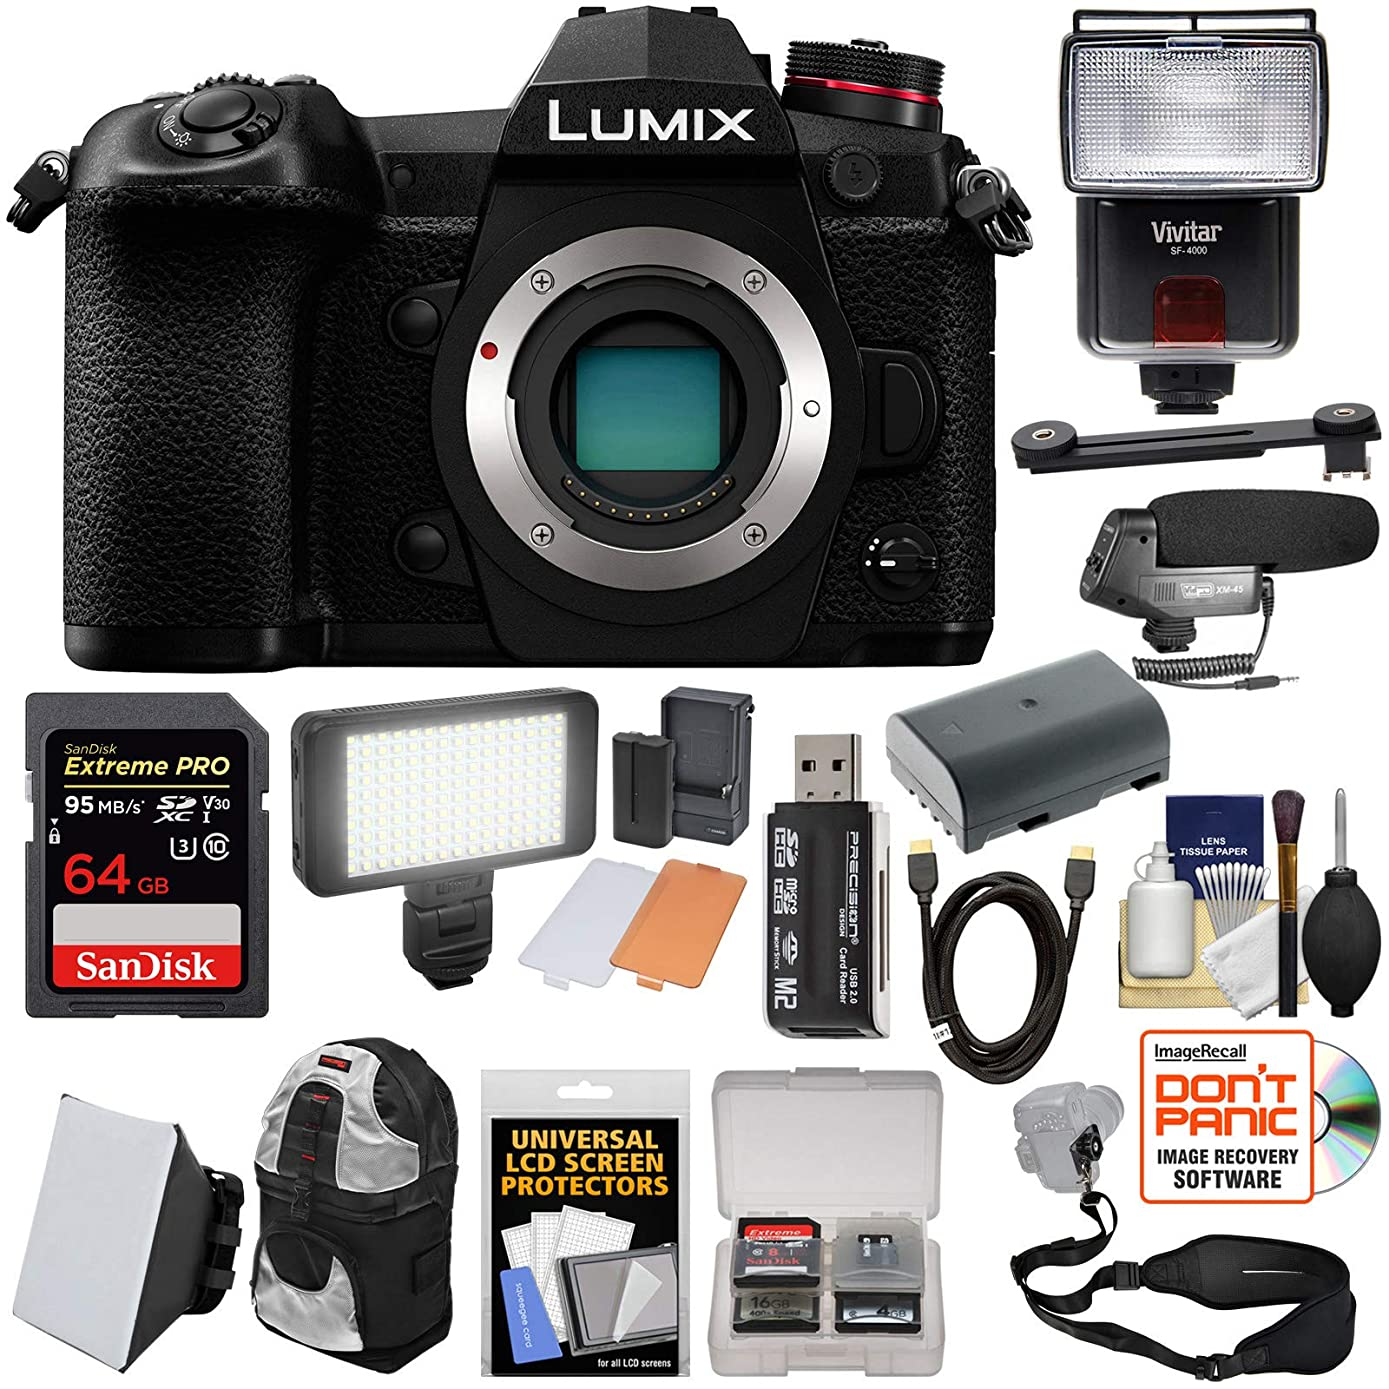 Panasonic Lumix DC-G9 4K Wi-Fi Digital Camera Body with 64GB Card + Battery + Backpack + Flash + Soft Box + Video Light + Mic Kit